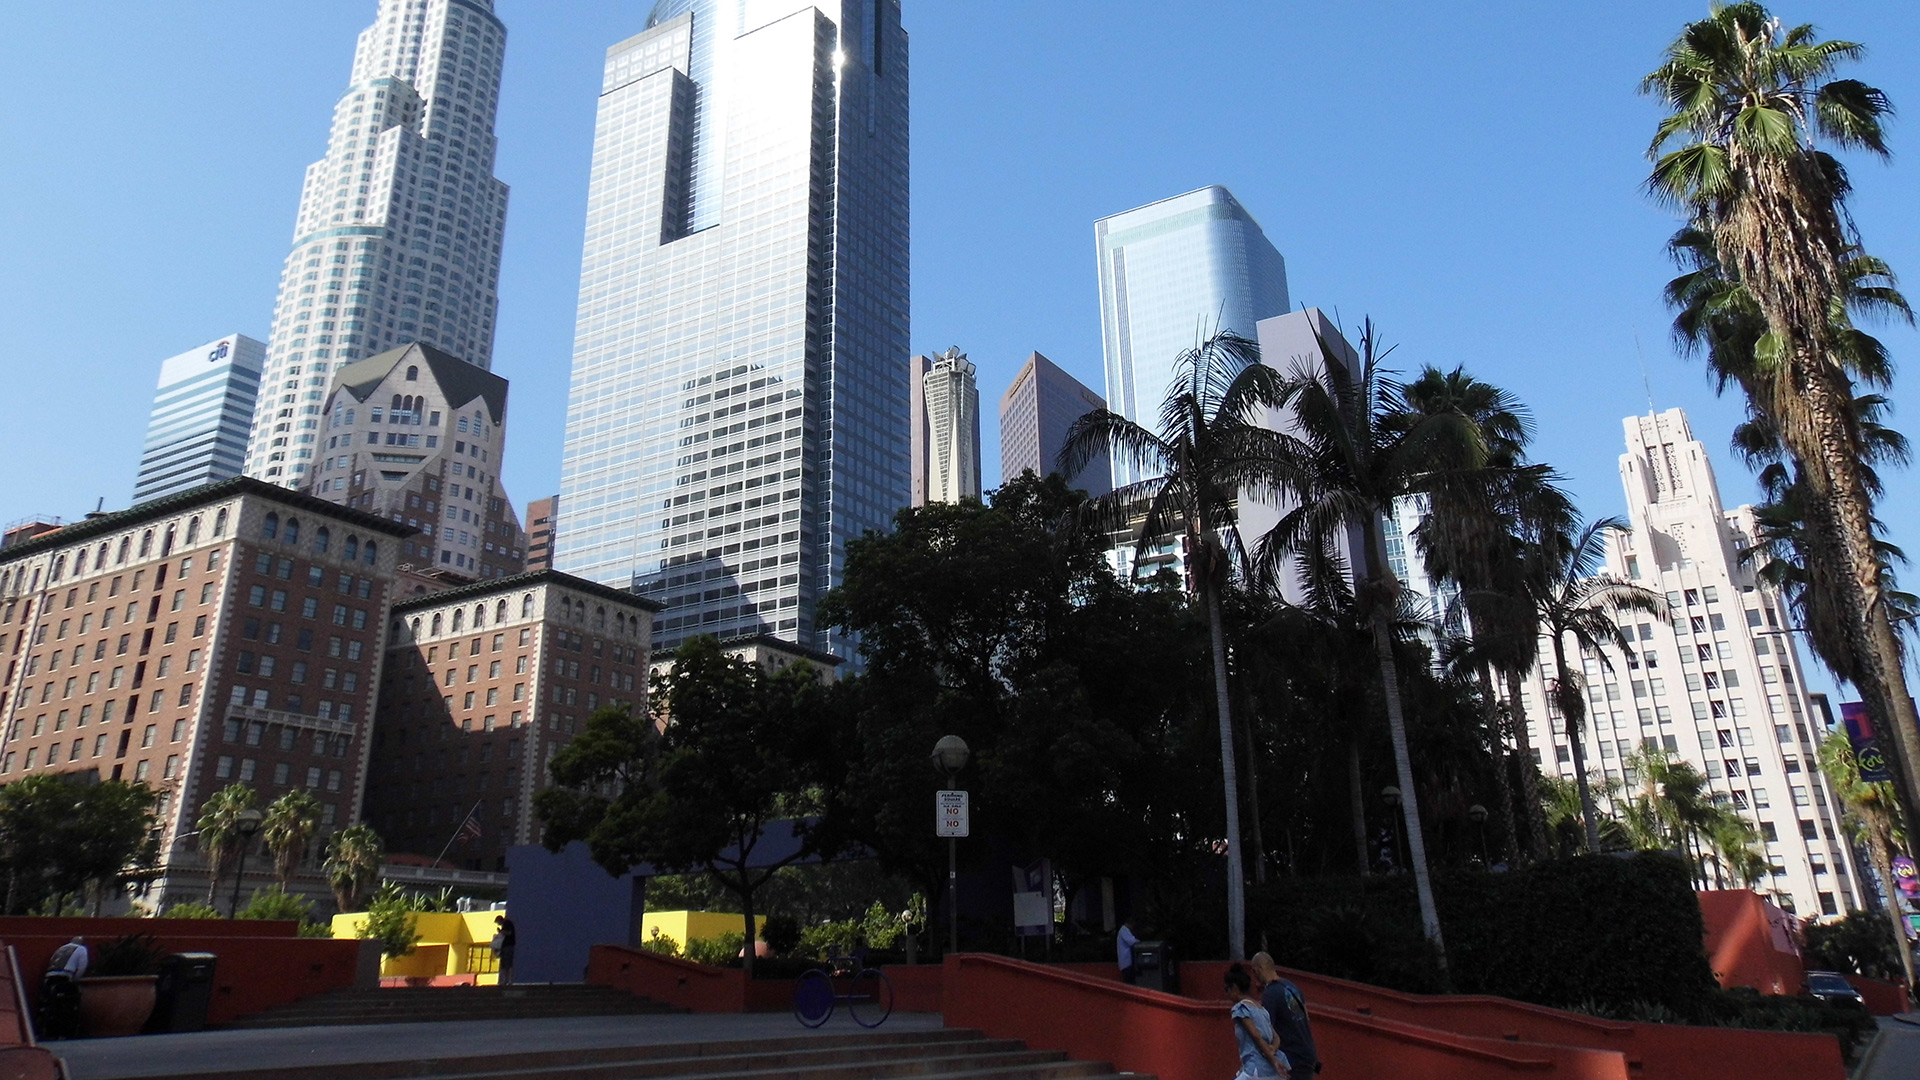 The Biltmore from Pershing Square today |